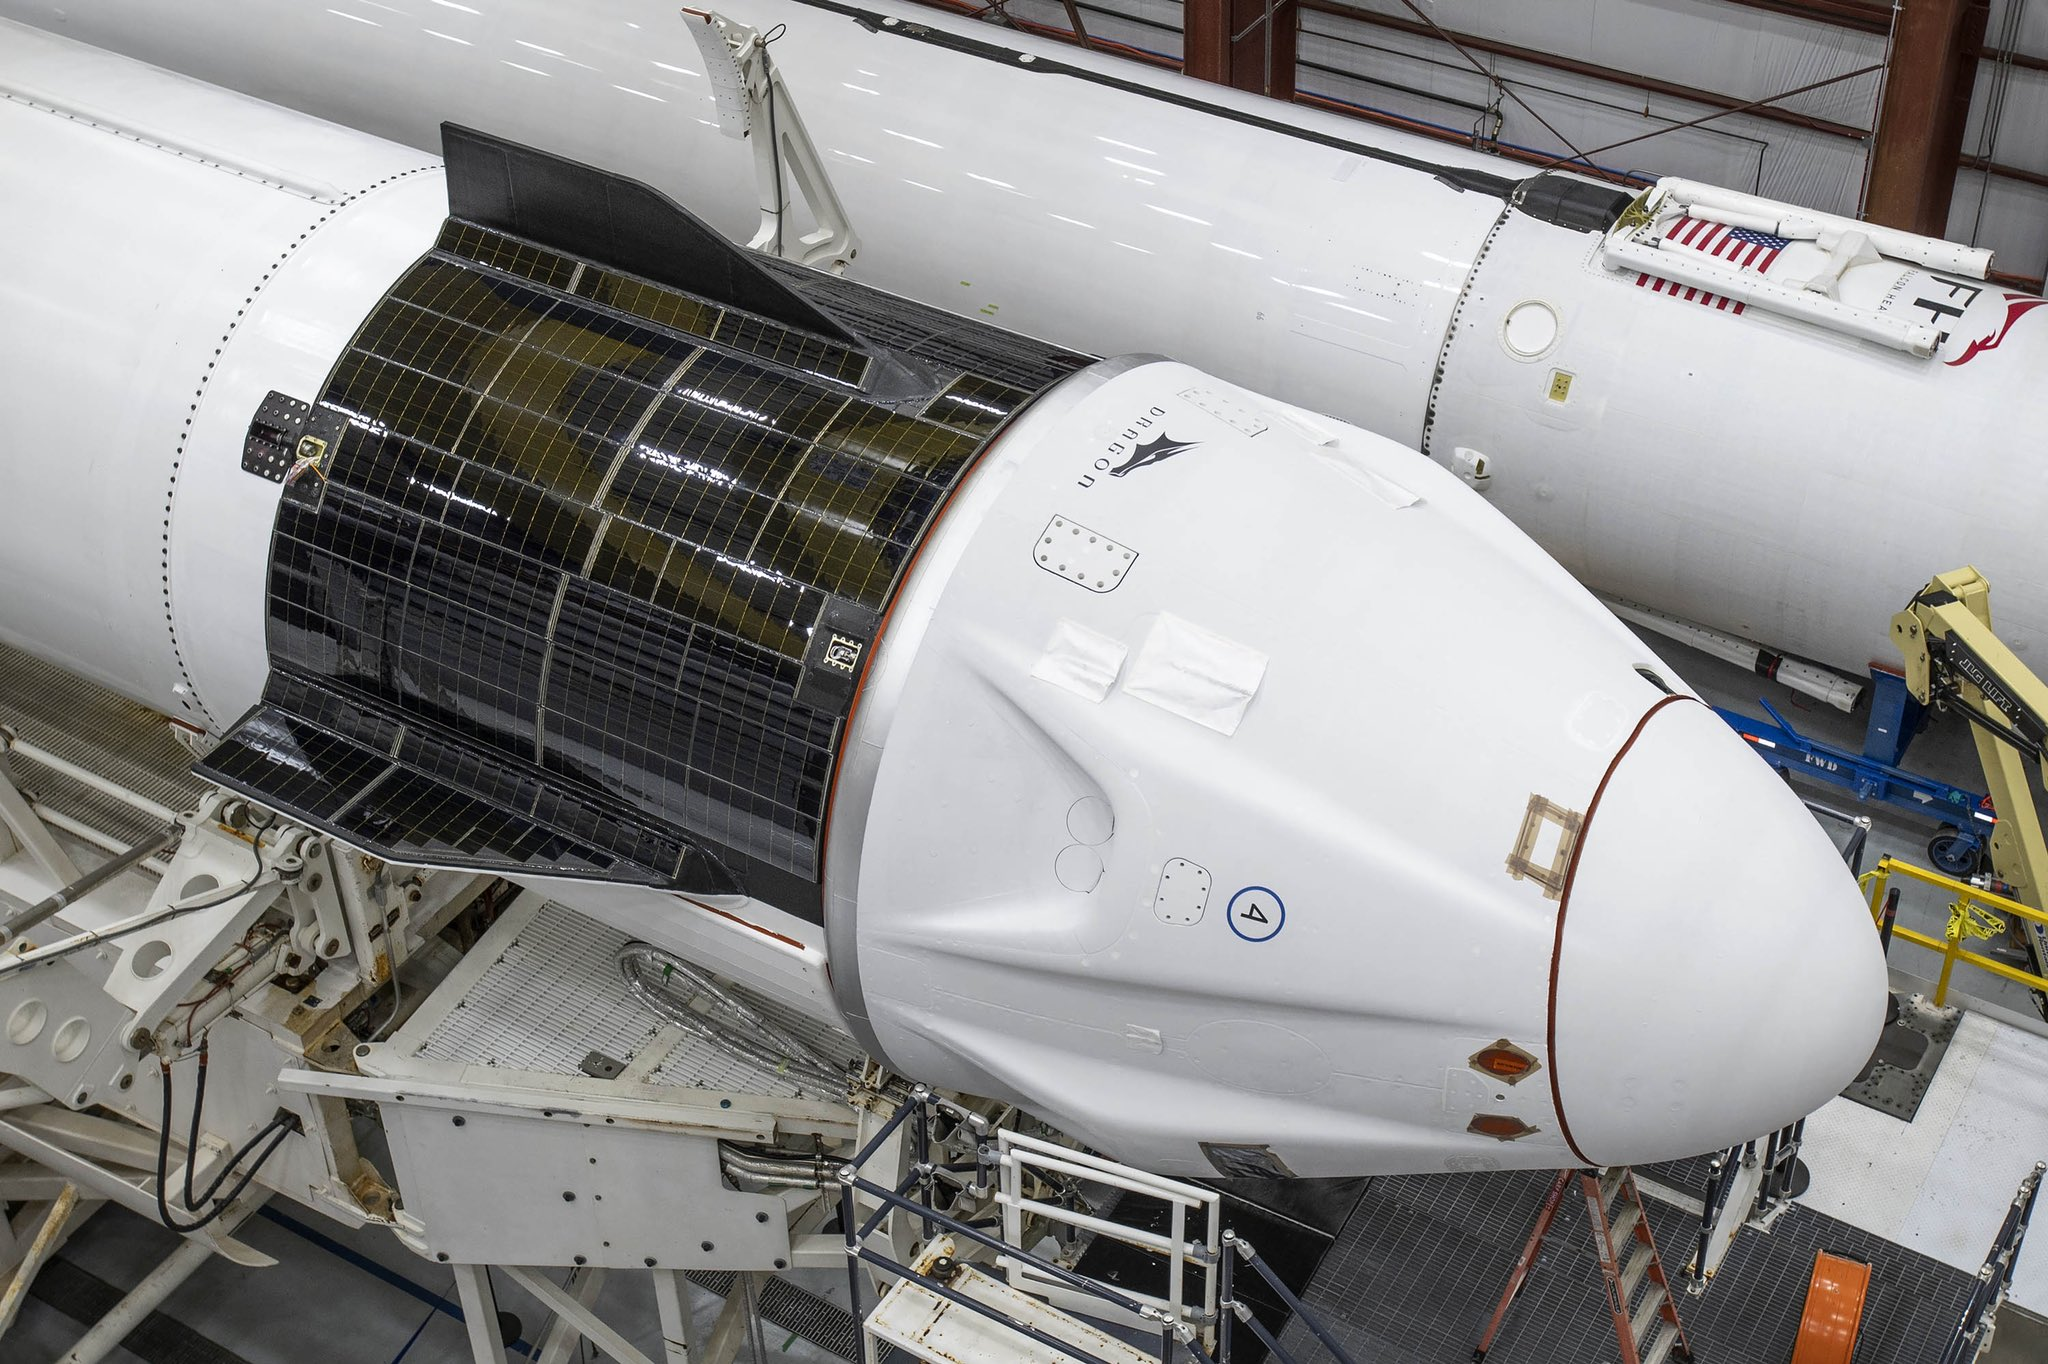 SpaceX's Crew Dragon Resilience is seen with the Inspiration4 mission logo inside its hangar ahead of a planned Sept. 15, 2021 launch from Pad 39A of NASA's Kennedy Space Center in Florida.